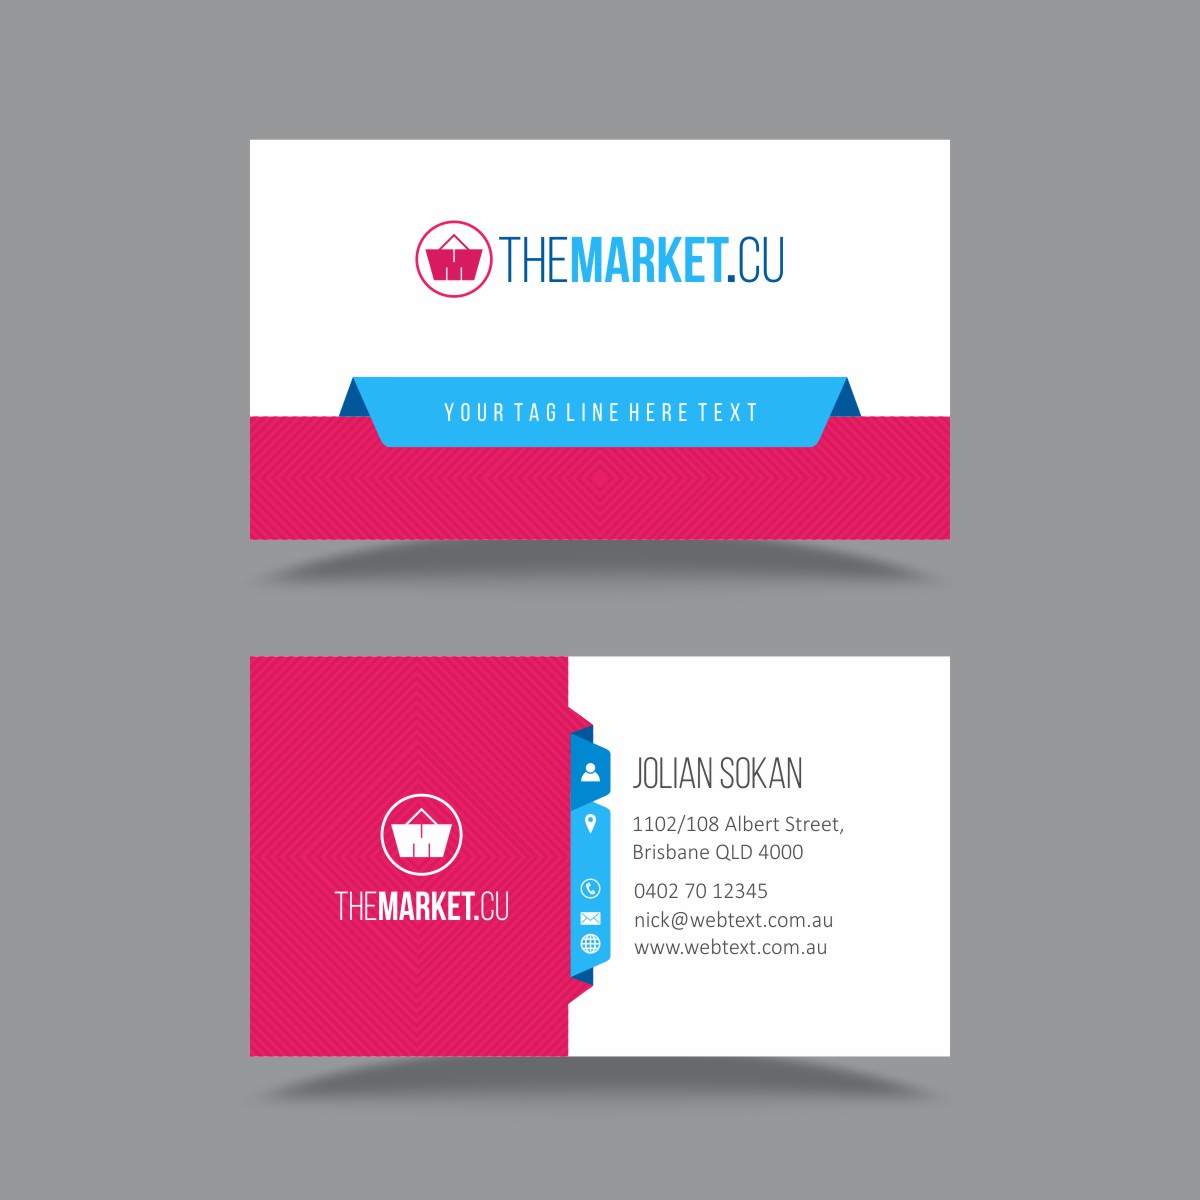 Logo maker free for business card template 28 images business logo maker free for business card template by ecommerce business card template logo maker s accmission Gallery